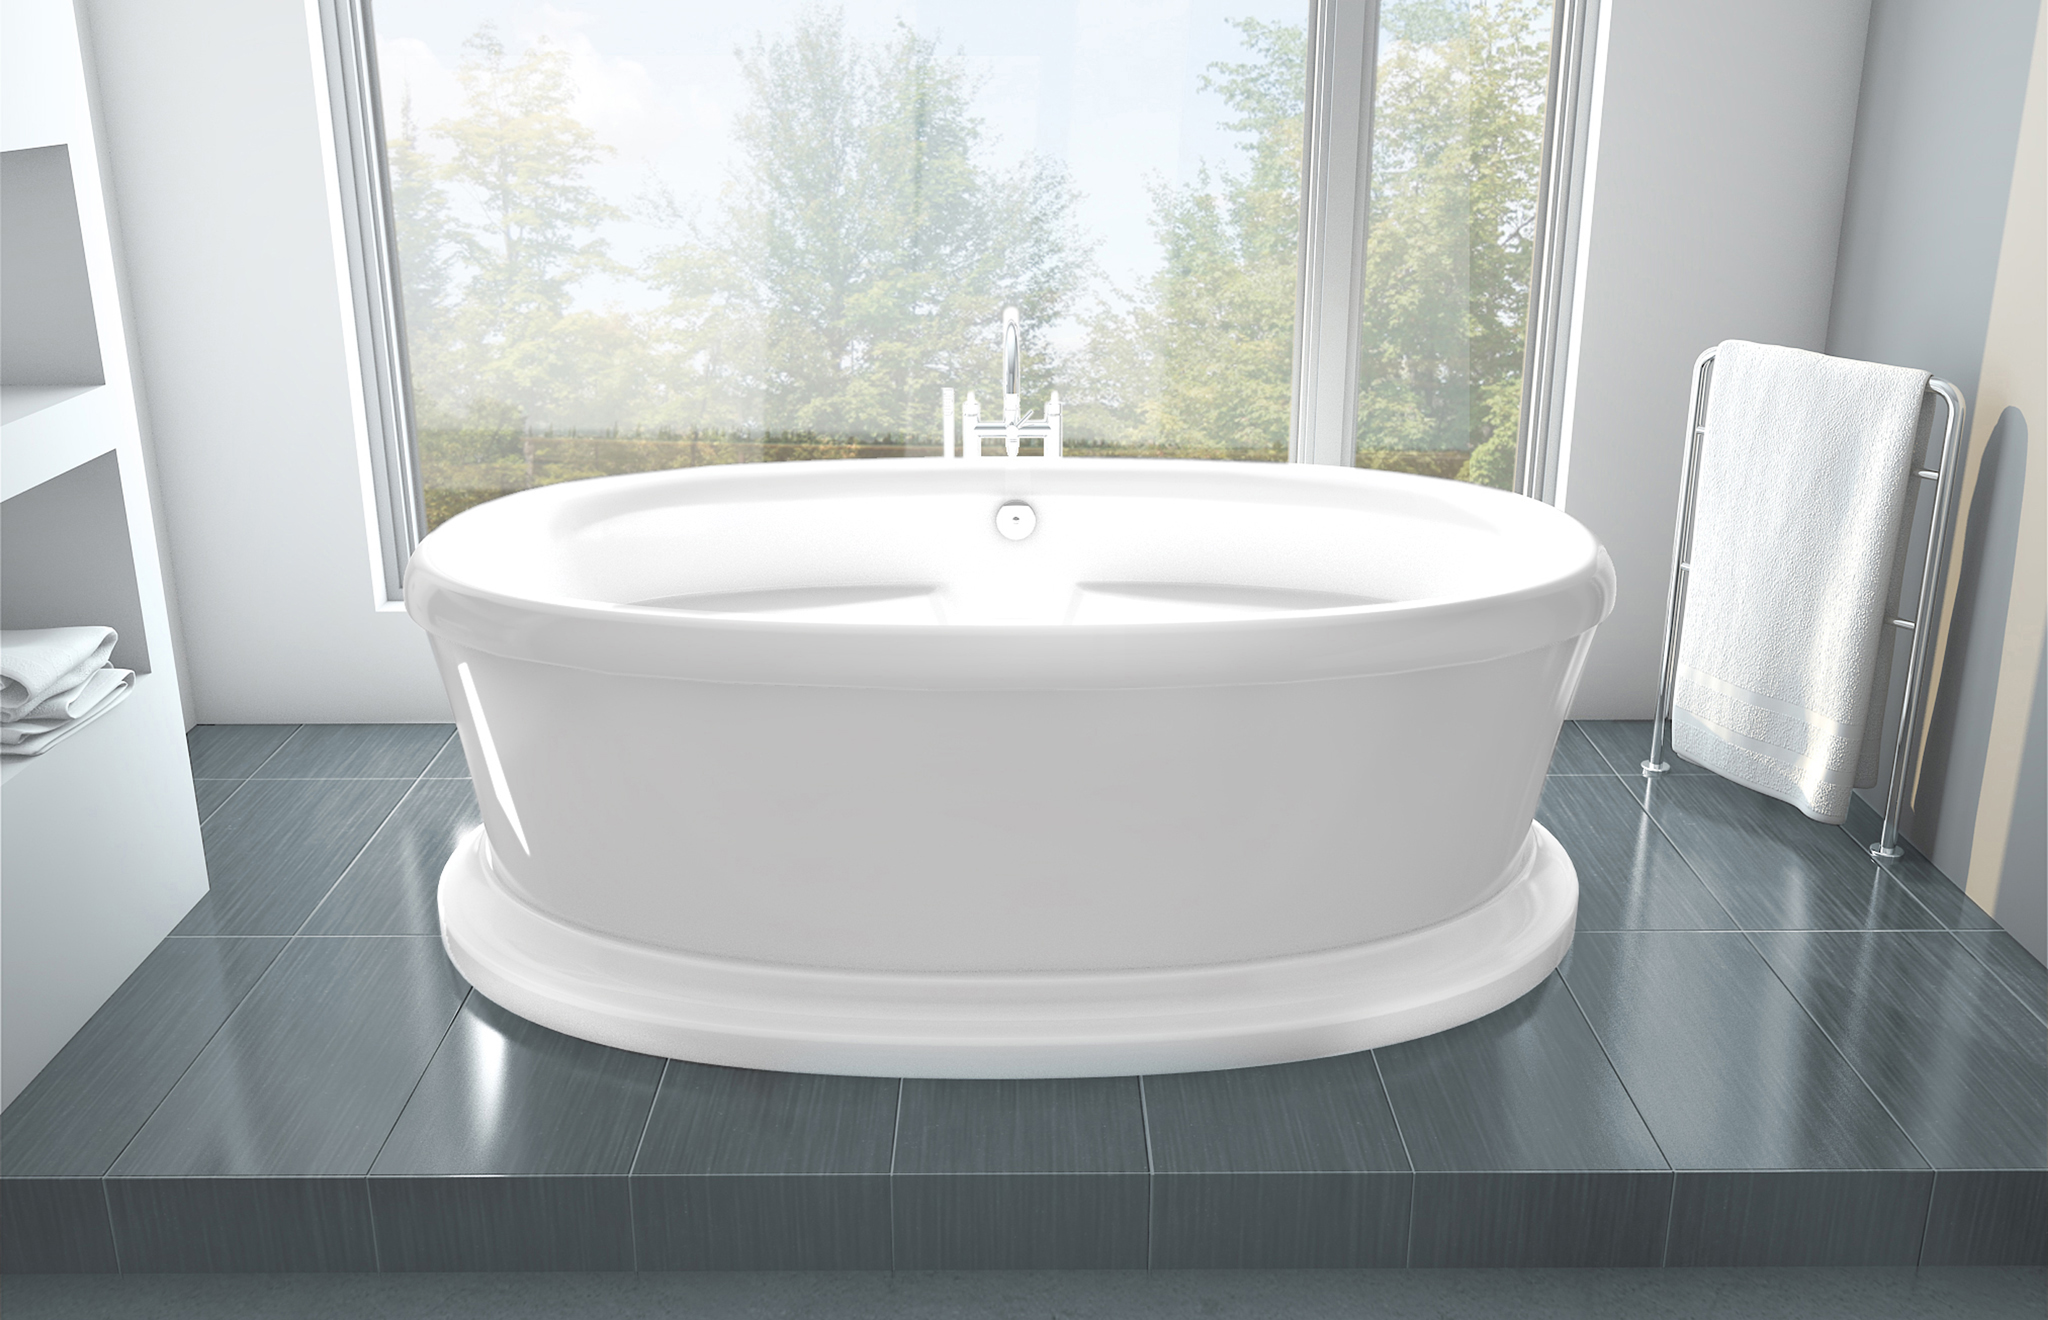 home bathtub radnor magnus products slipper collections acrylic tubs clawfoot tub freestanding download bathtubs